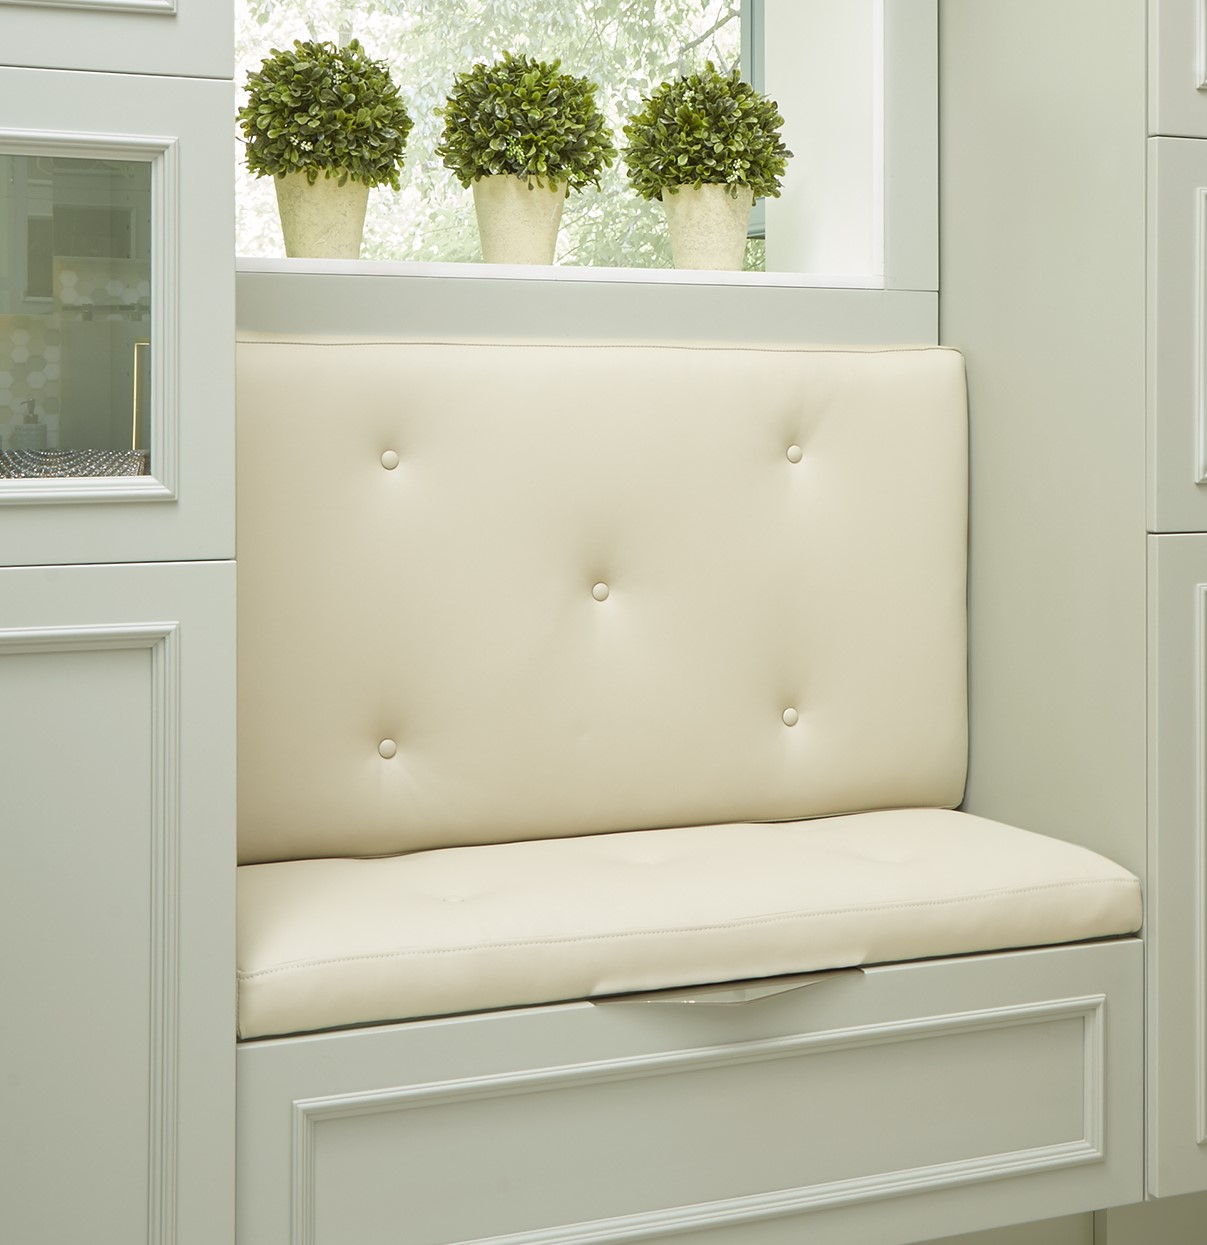 Set 7-8_Bench_W_Cushions (2).jpg